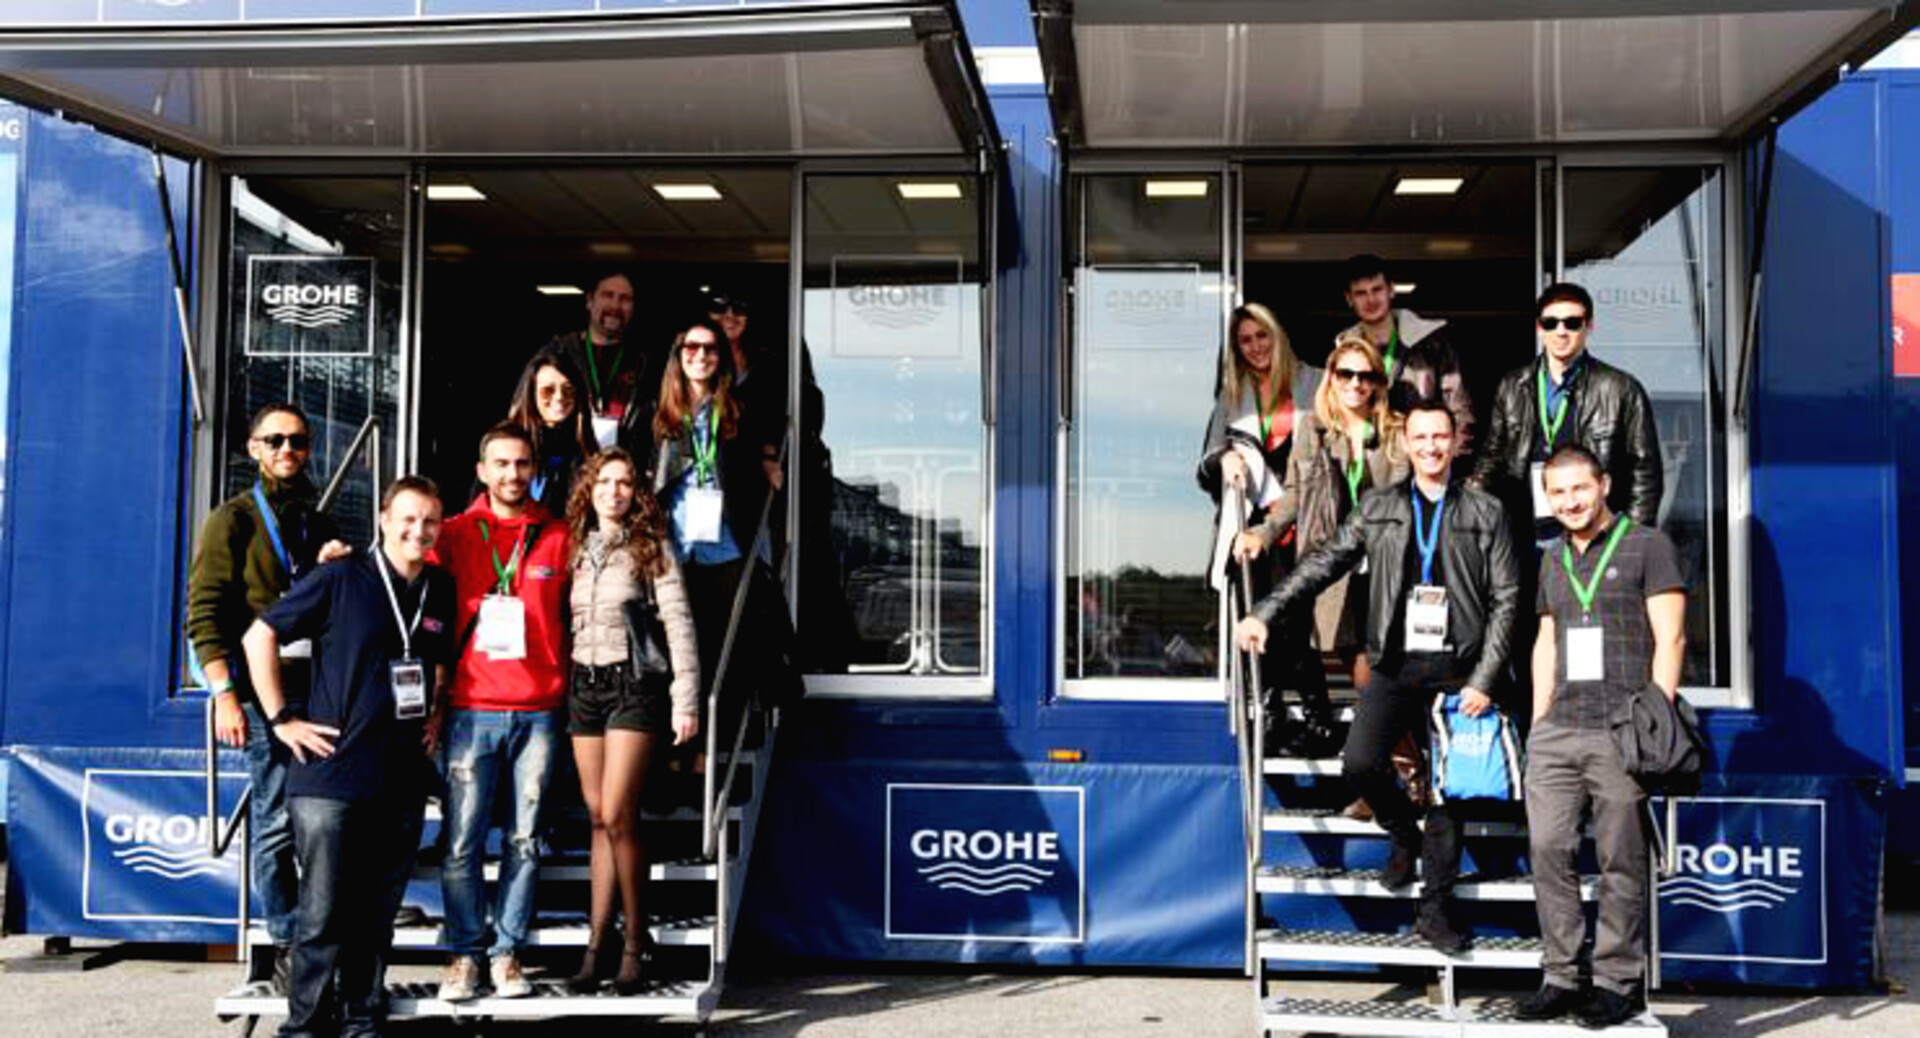 grohe-supertruck-showtruck-on-roadshow-tour-1.JPG